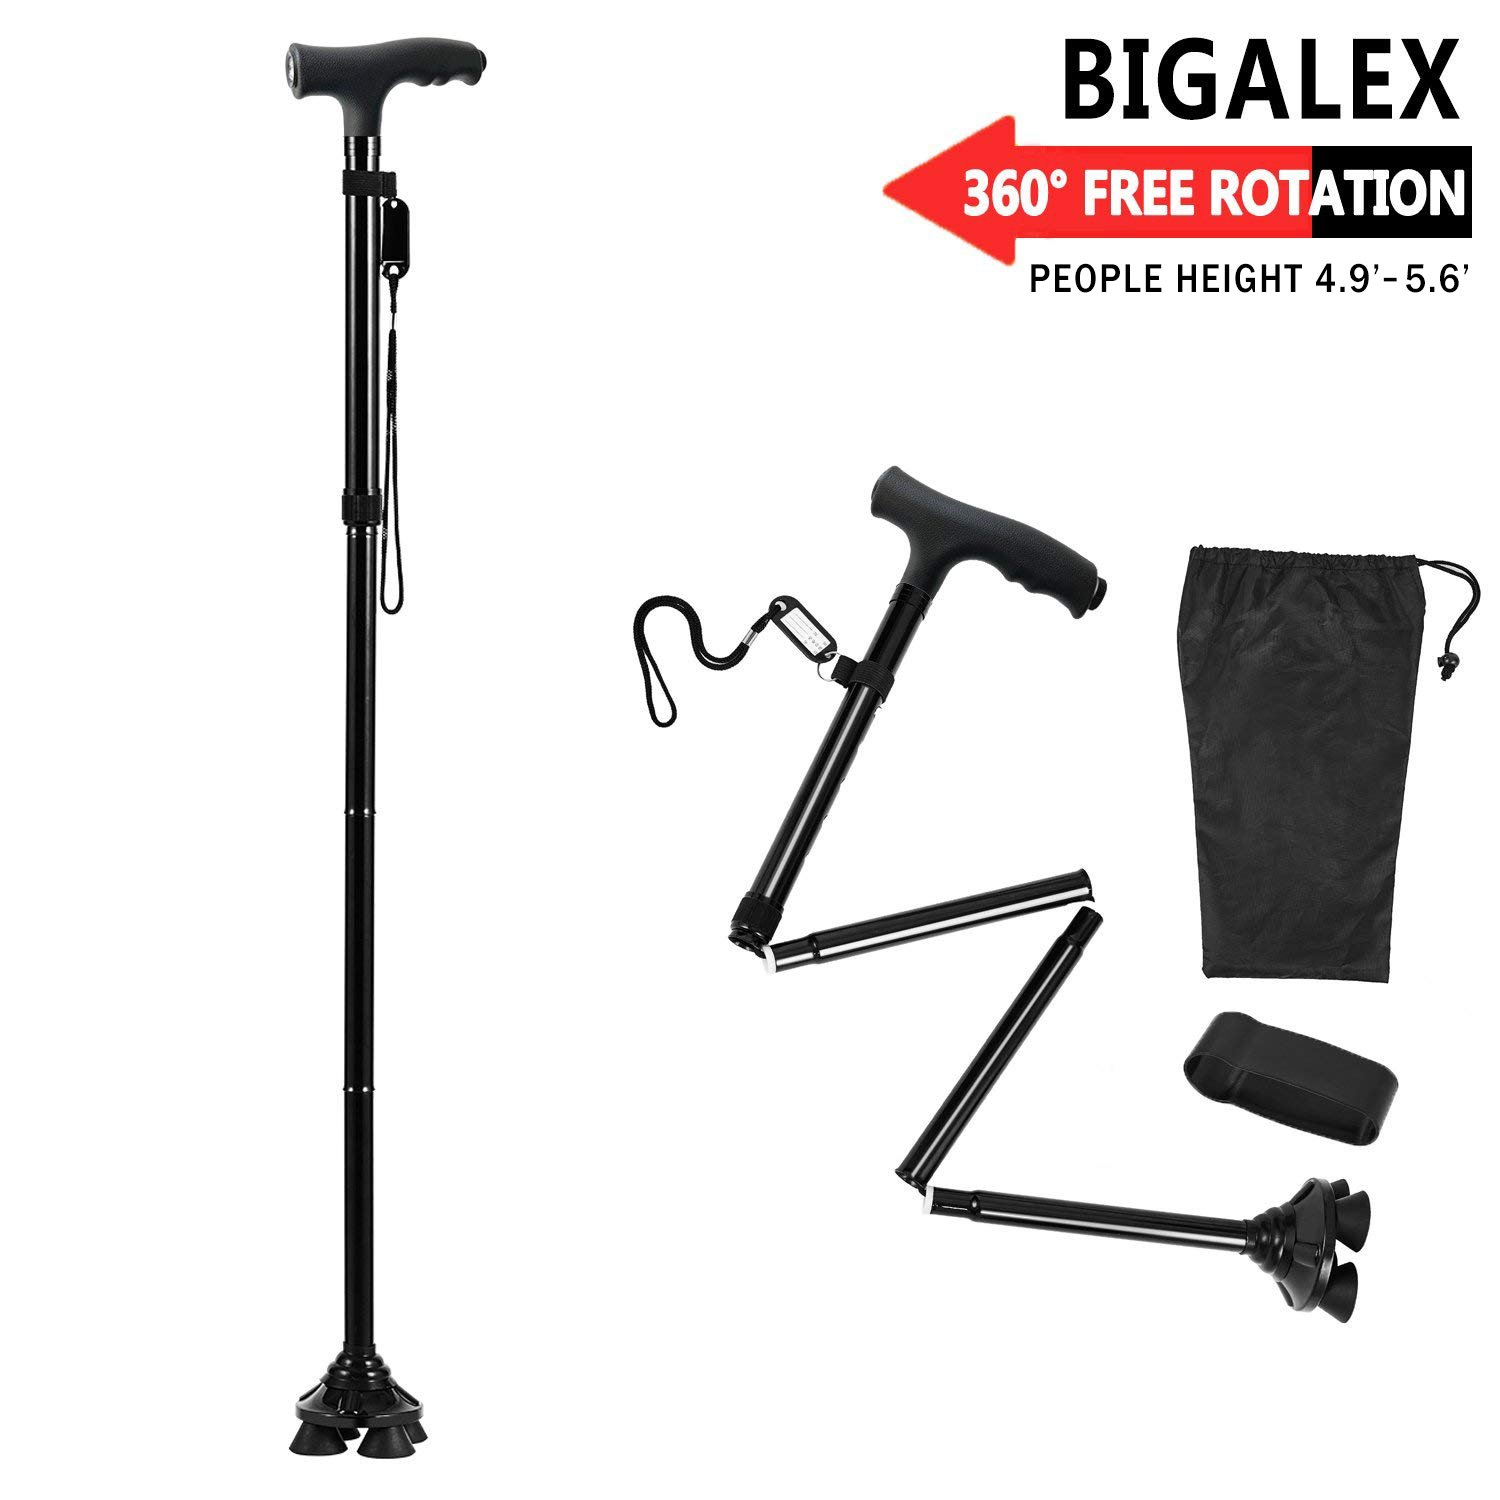 BigAlex Folding Walking Cane with LED Light,Adjustable & Portable Walking Stick, Lightweight,Collapsible with Carrying Bag for Men/Woman(Short)